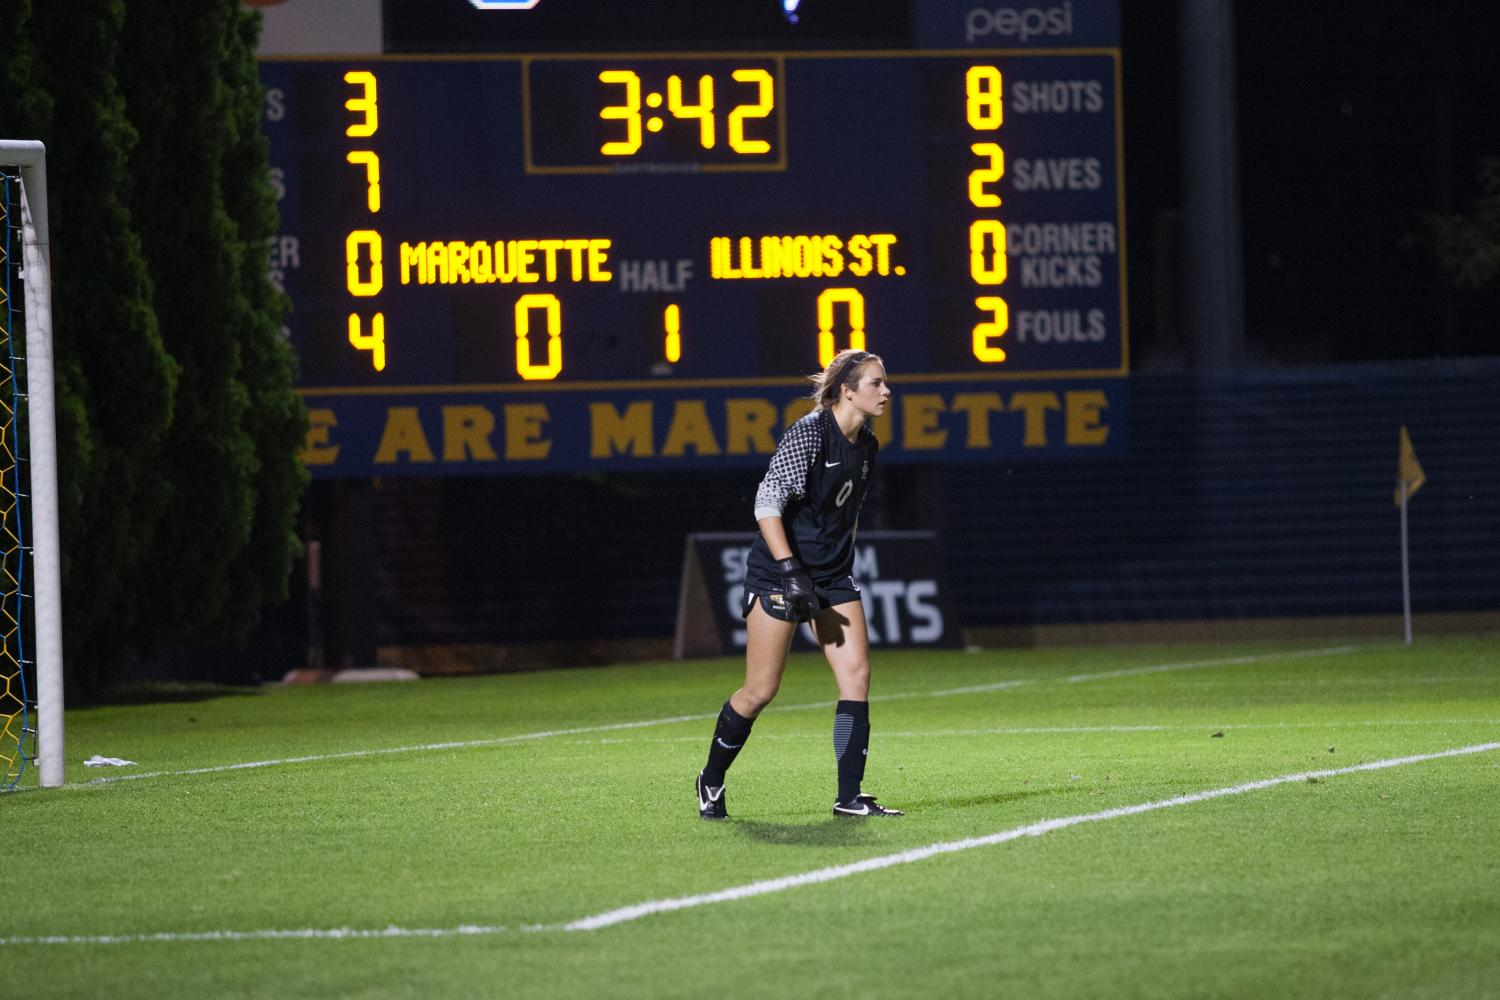 Goalkeeper+Maddy+Henry+set+a+career+saves+mark+in+a+scoreless+draw+against+Illinois+State.